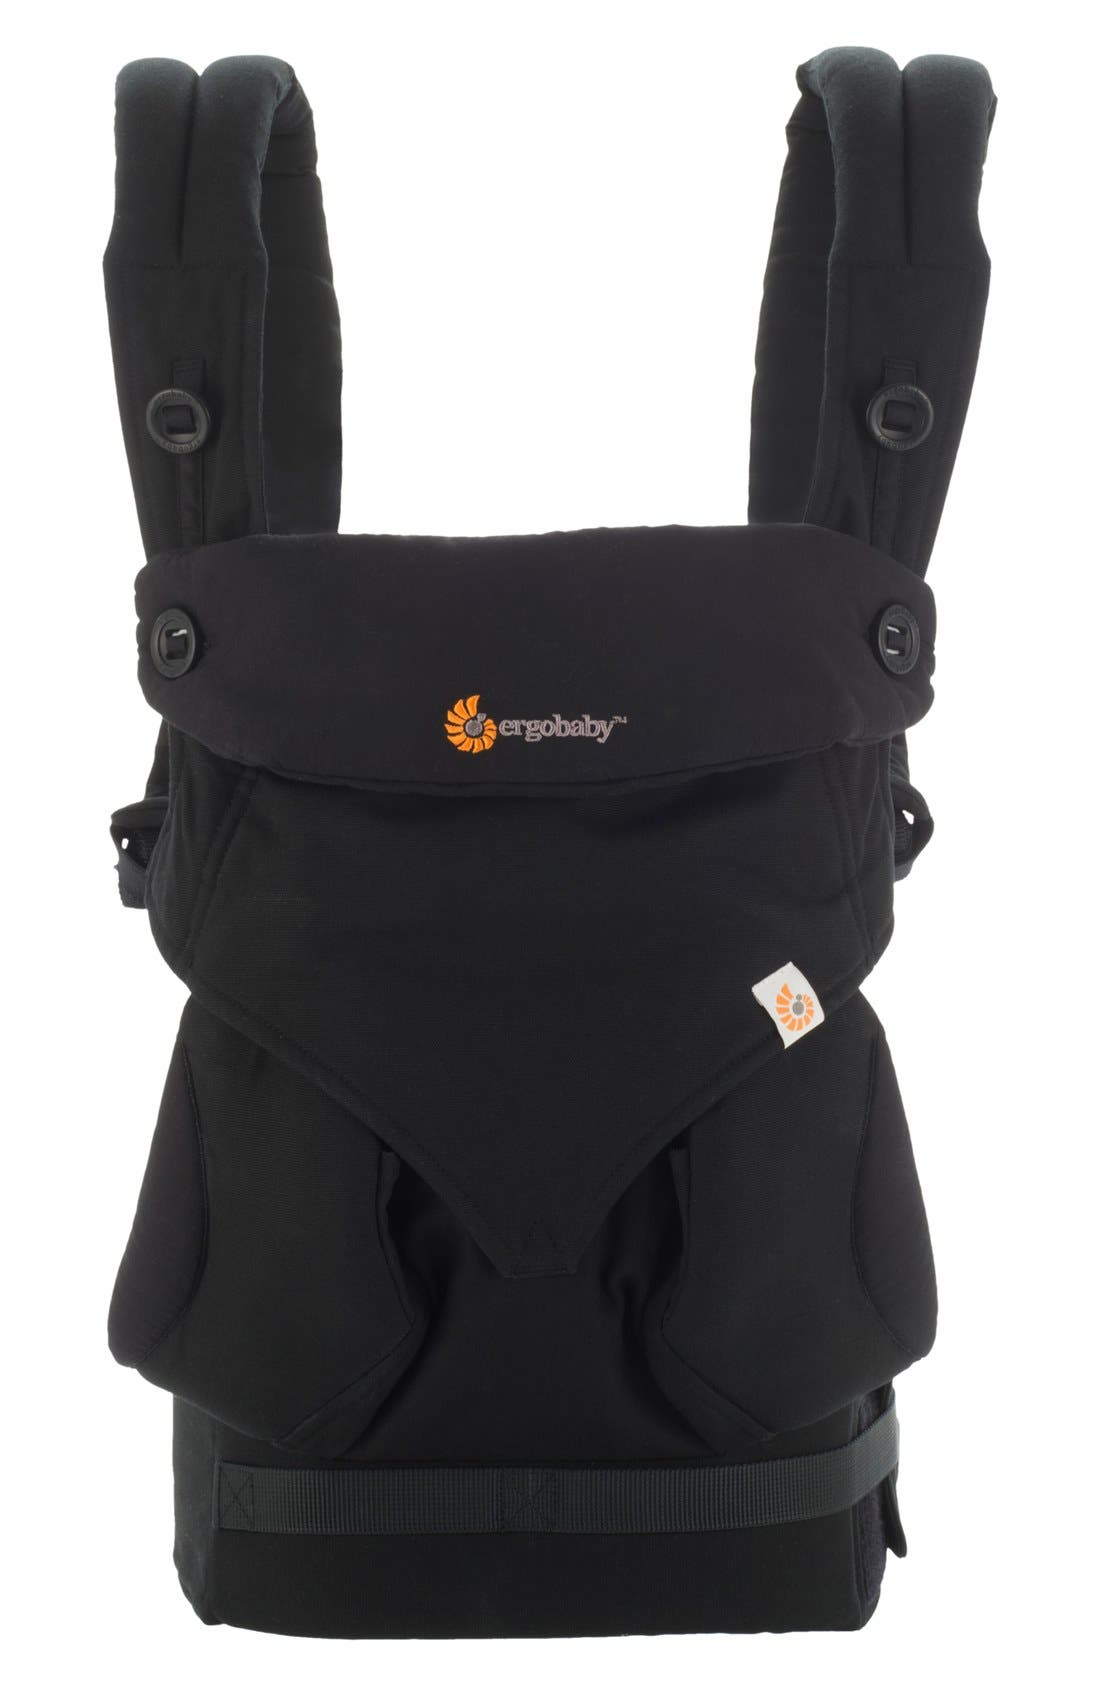 '360' Baby Carrier,                         Main,                         color, Black